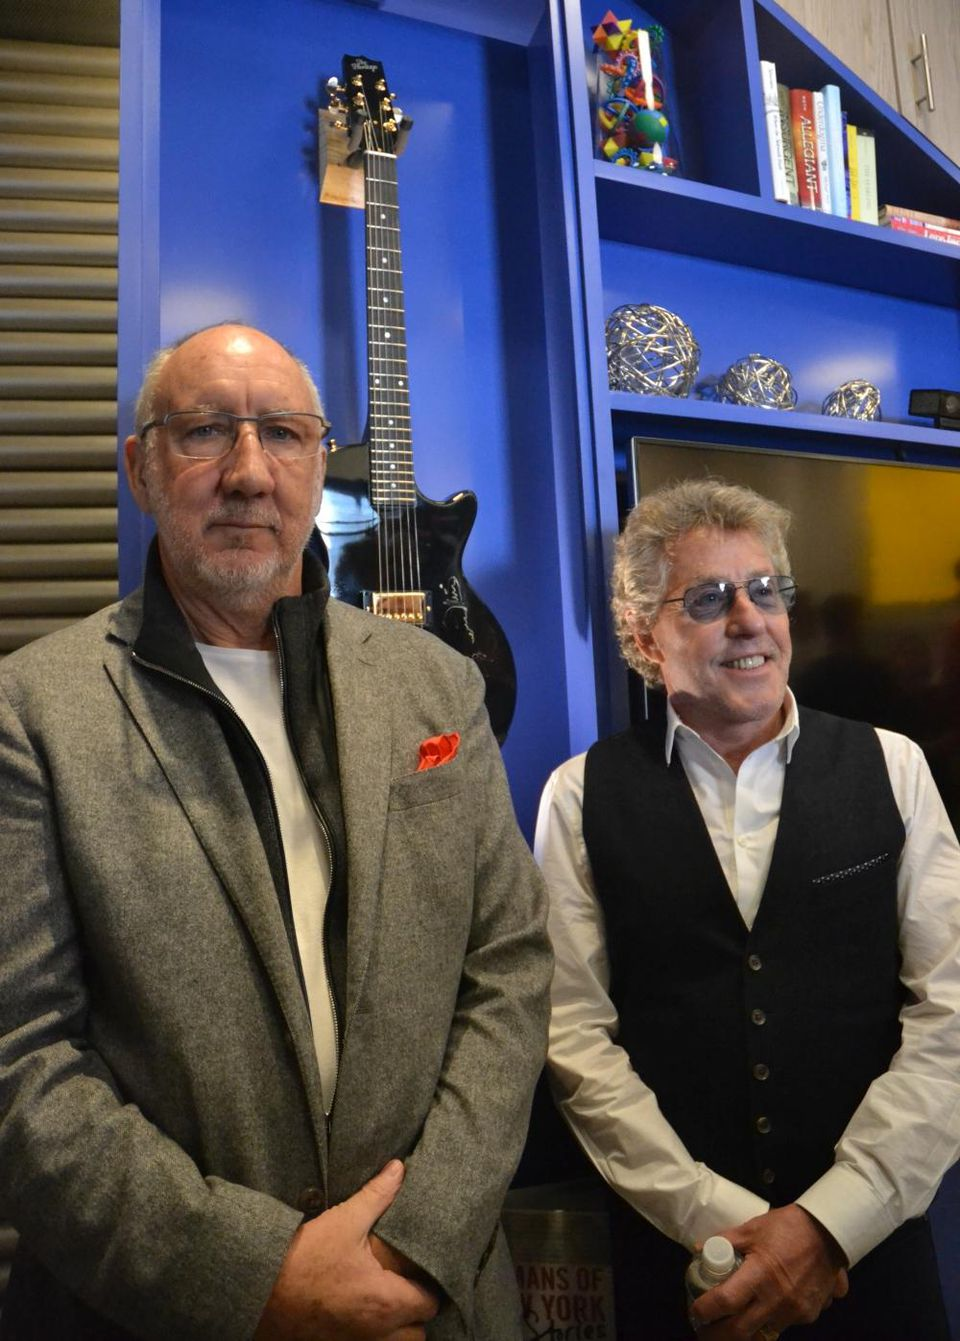 Teen Cancer America's Center at Memorial Sloan Kettering opened in 2016 with Pete Townshend and Roger Daltrey. (Photo: Stacey Severn)